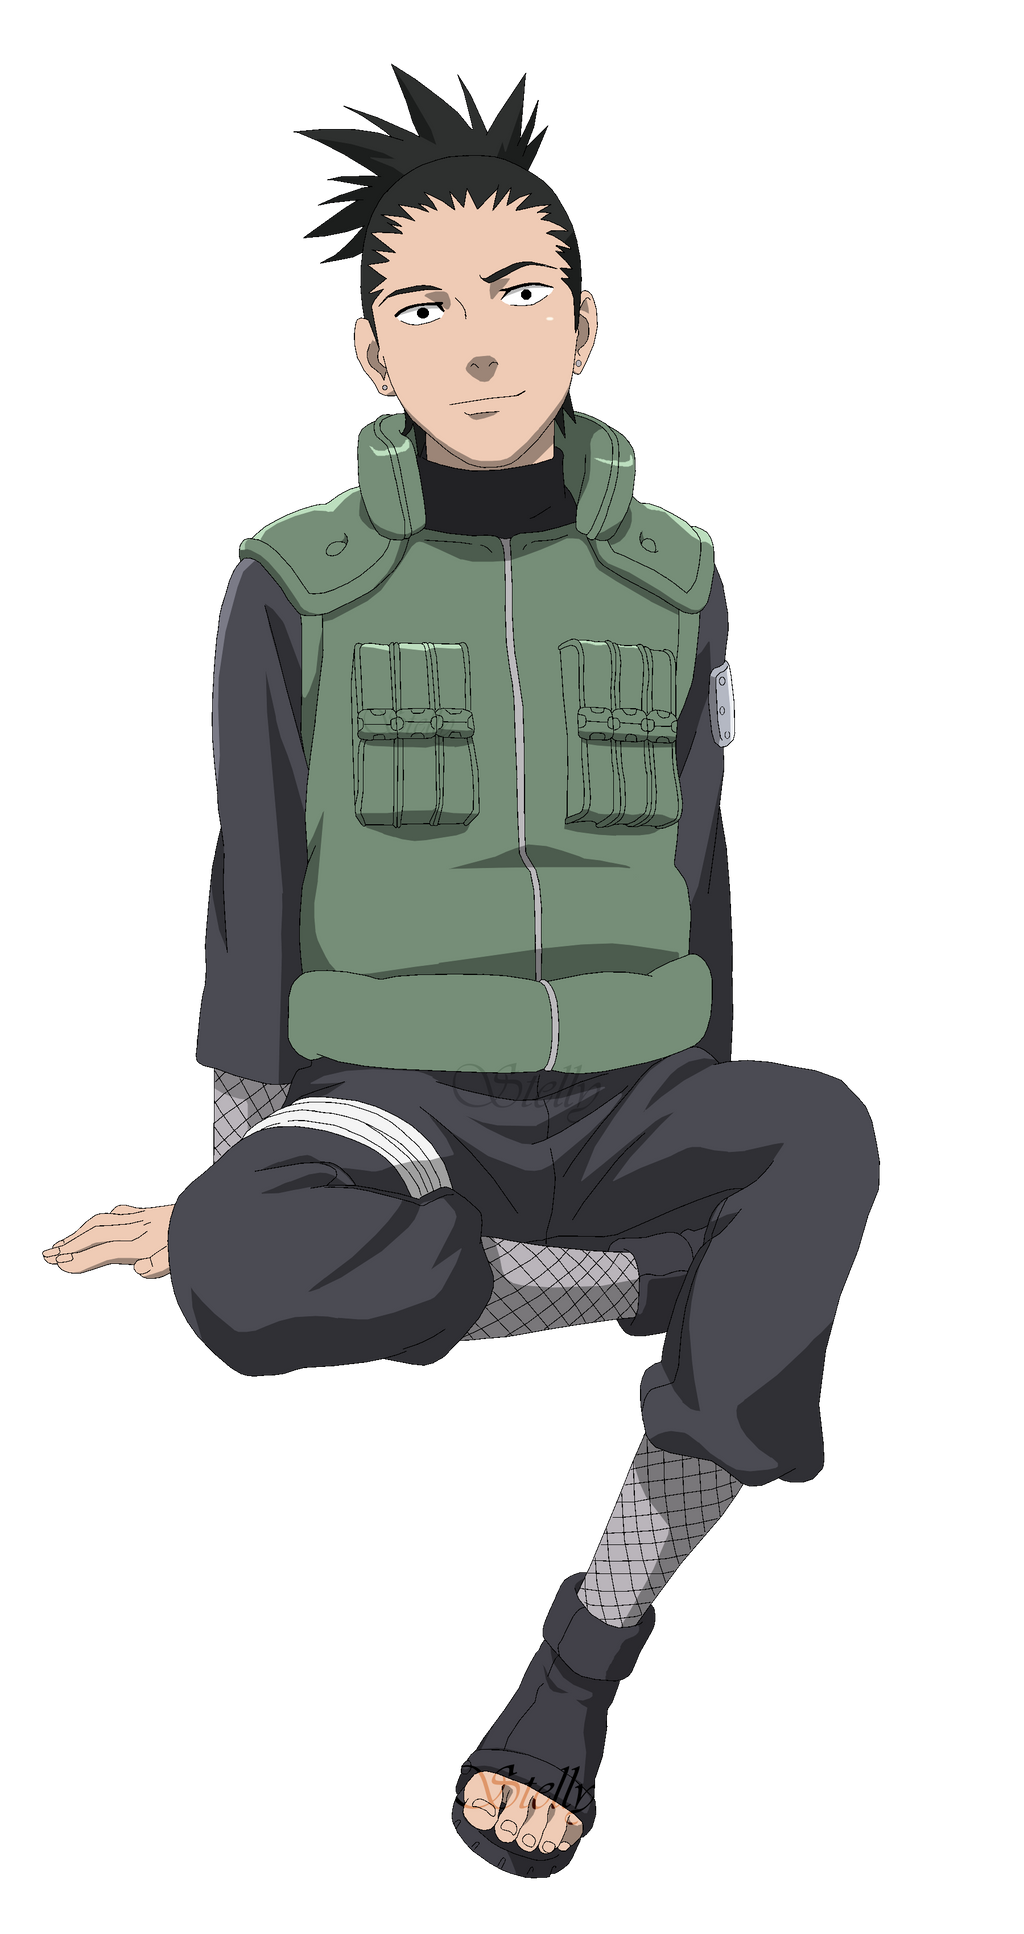 Shikamaru Nara - Lineart Colored by DennisStelly on DeviantArt